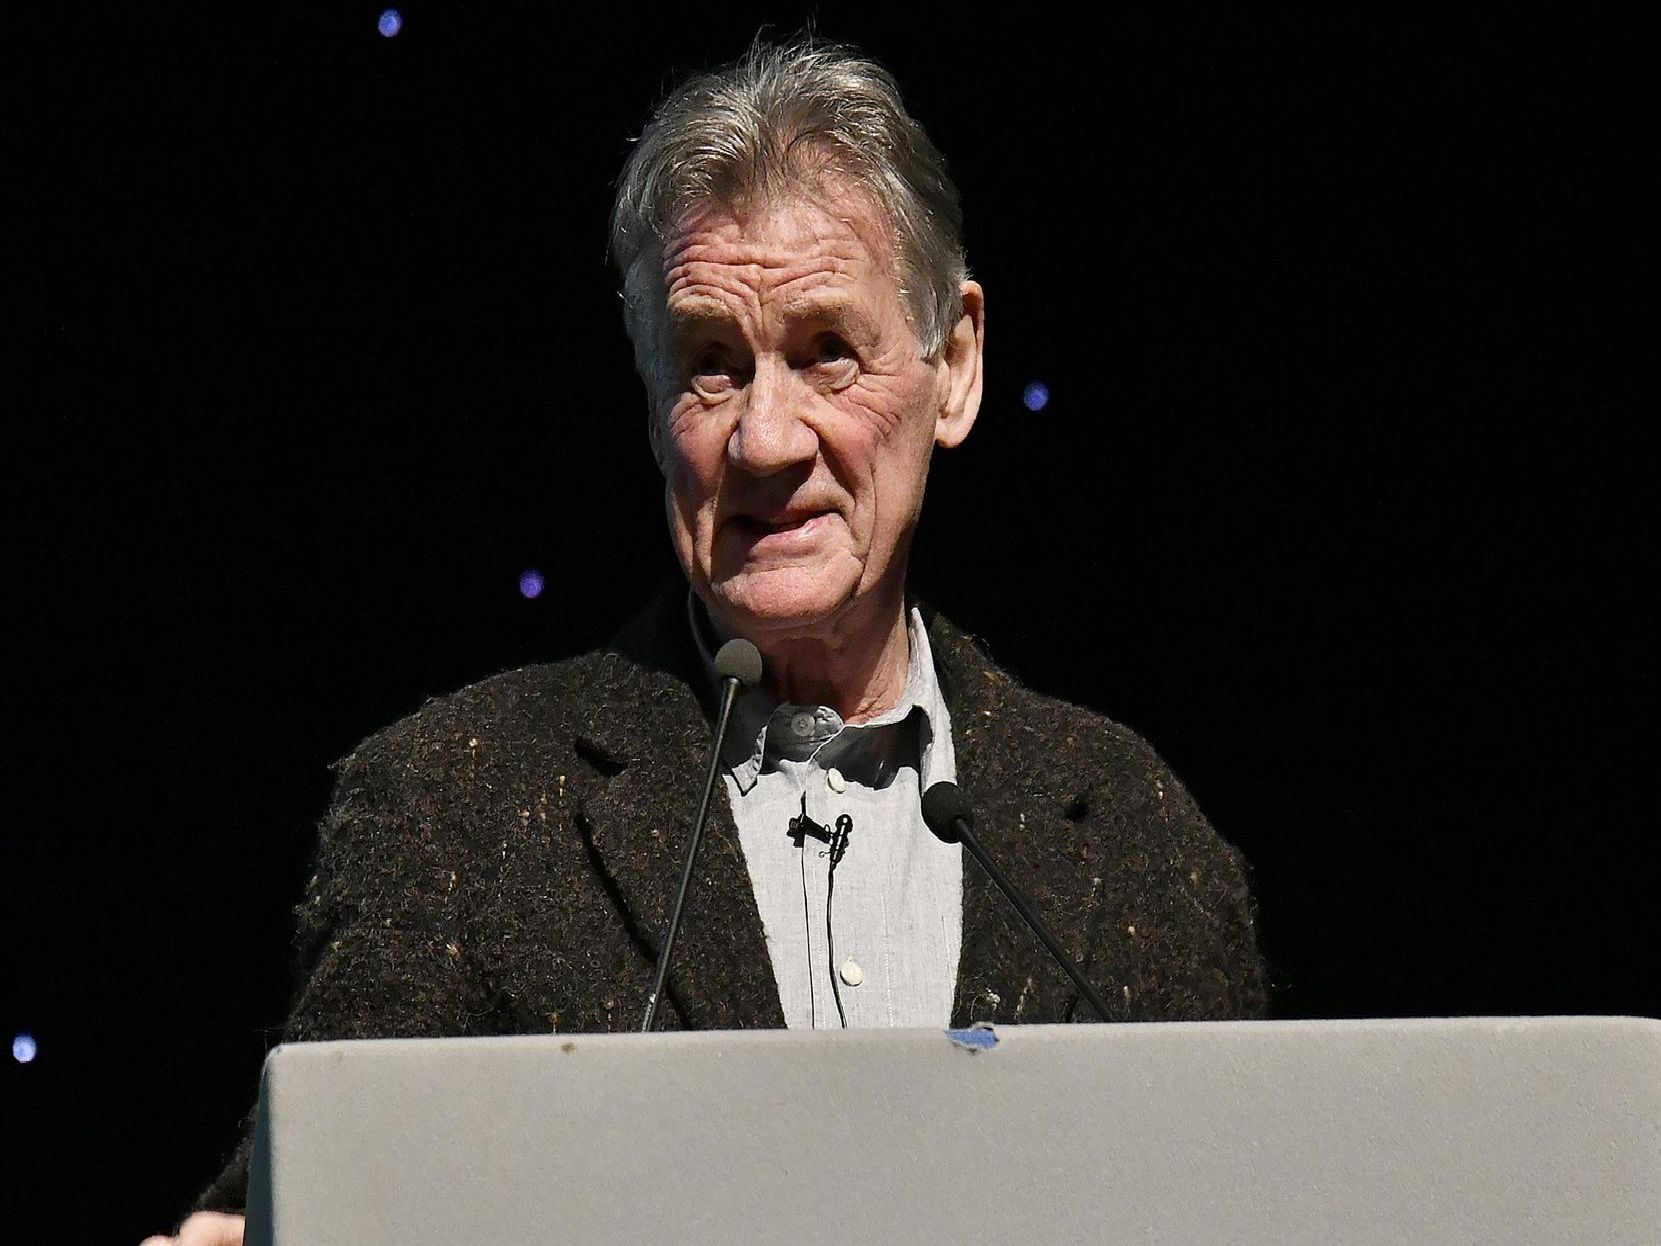 Michael Palin talked about his book Erebus - the Story of a Ship to a sell-out audience at the Spa